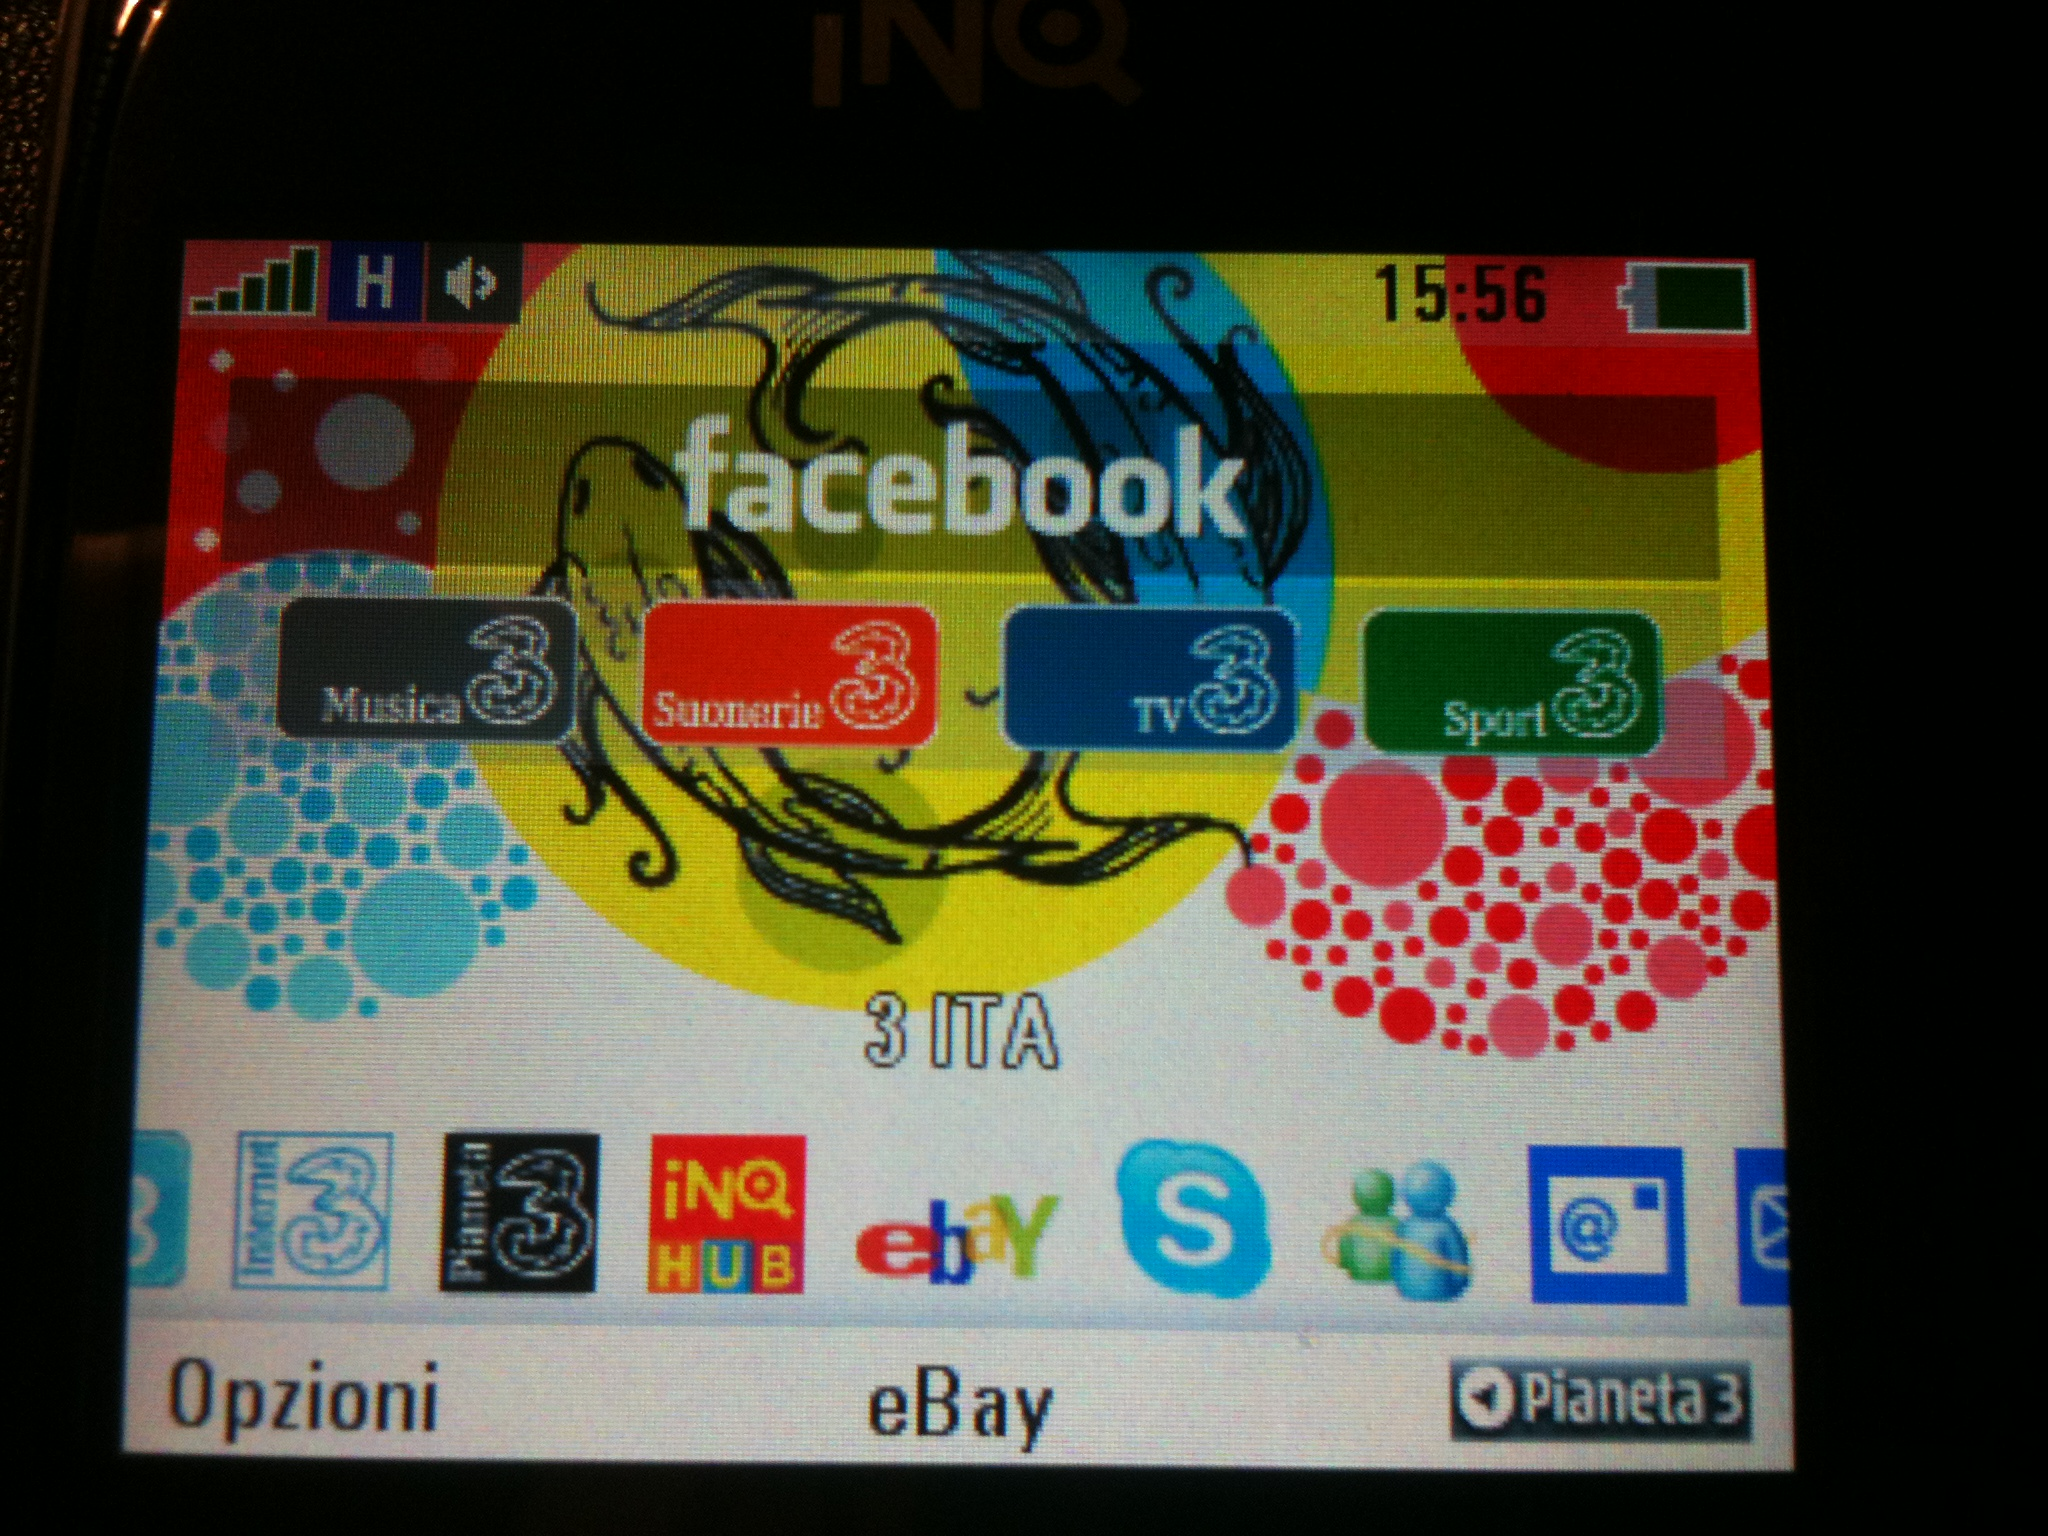 Inq Chat by 3 Italia